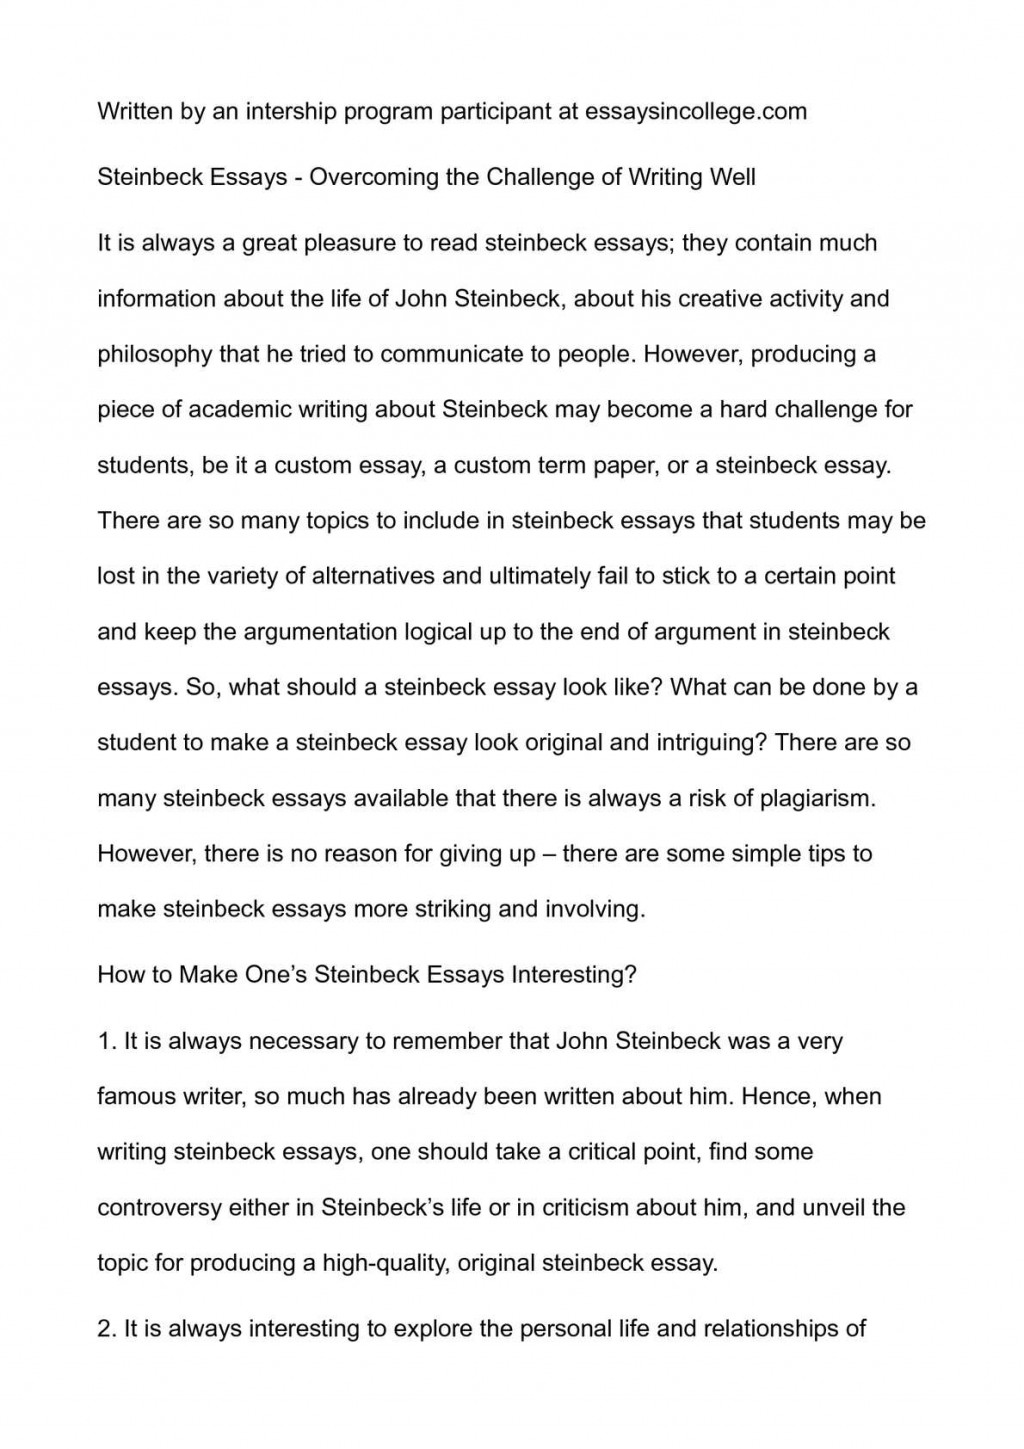 007 How An Essay Should Look P1 Unique What A Persuasive Like Does Introduction In Argumentative Large